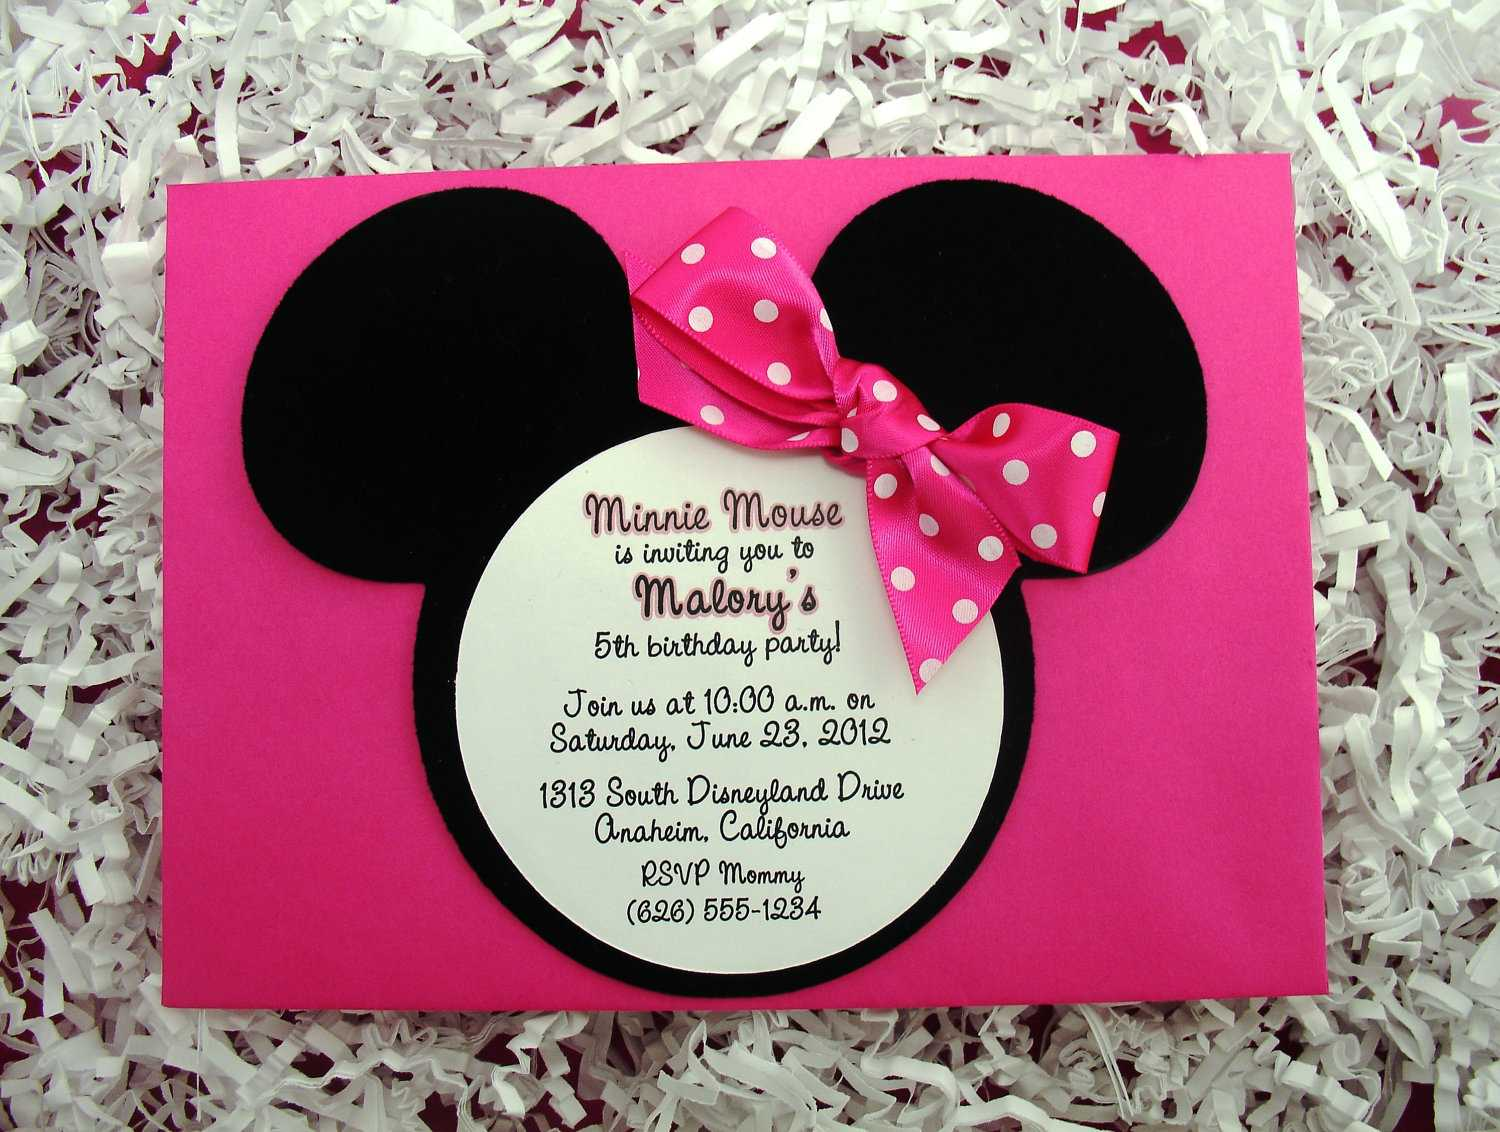 Minnie Mouse Party Invitations Minnie Mouse Party Invitations